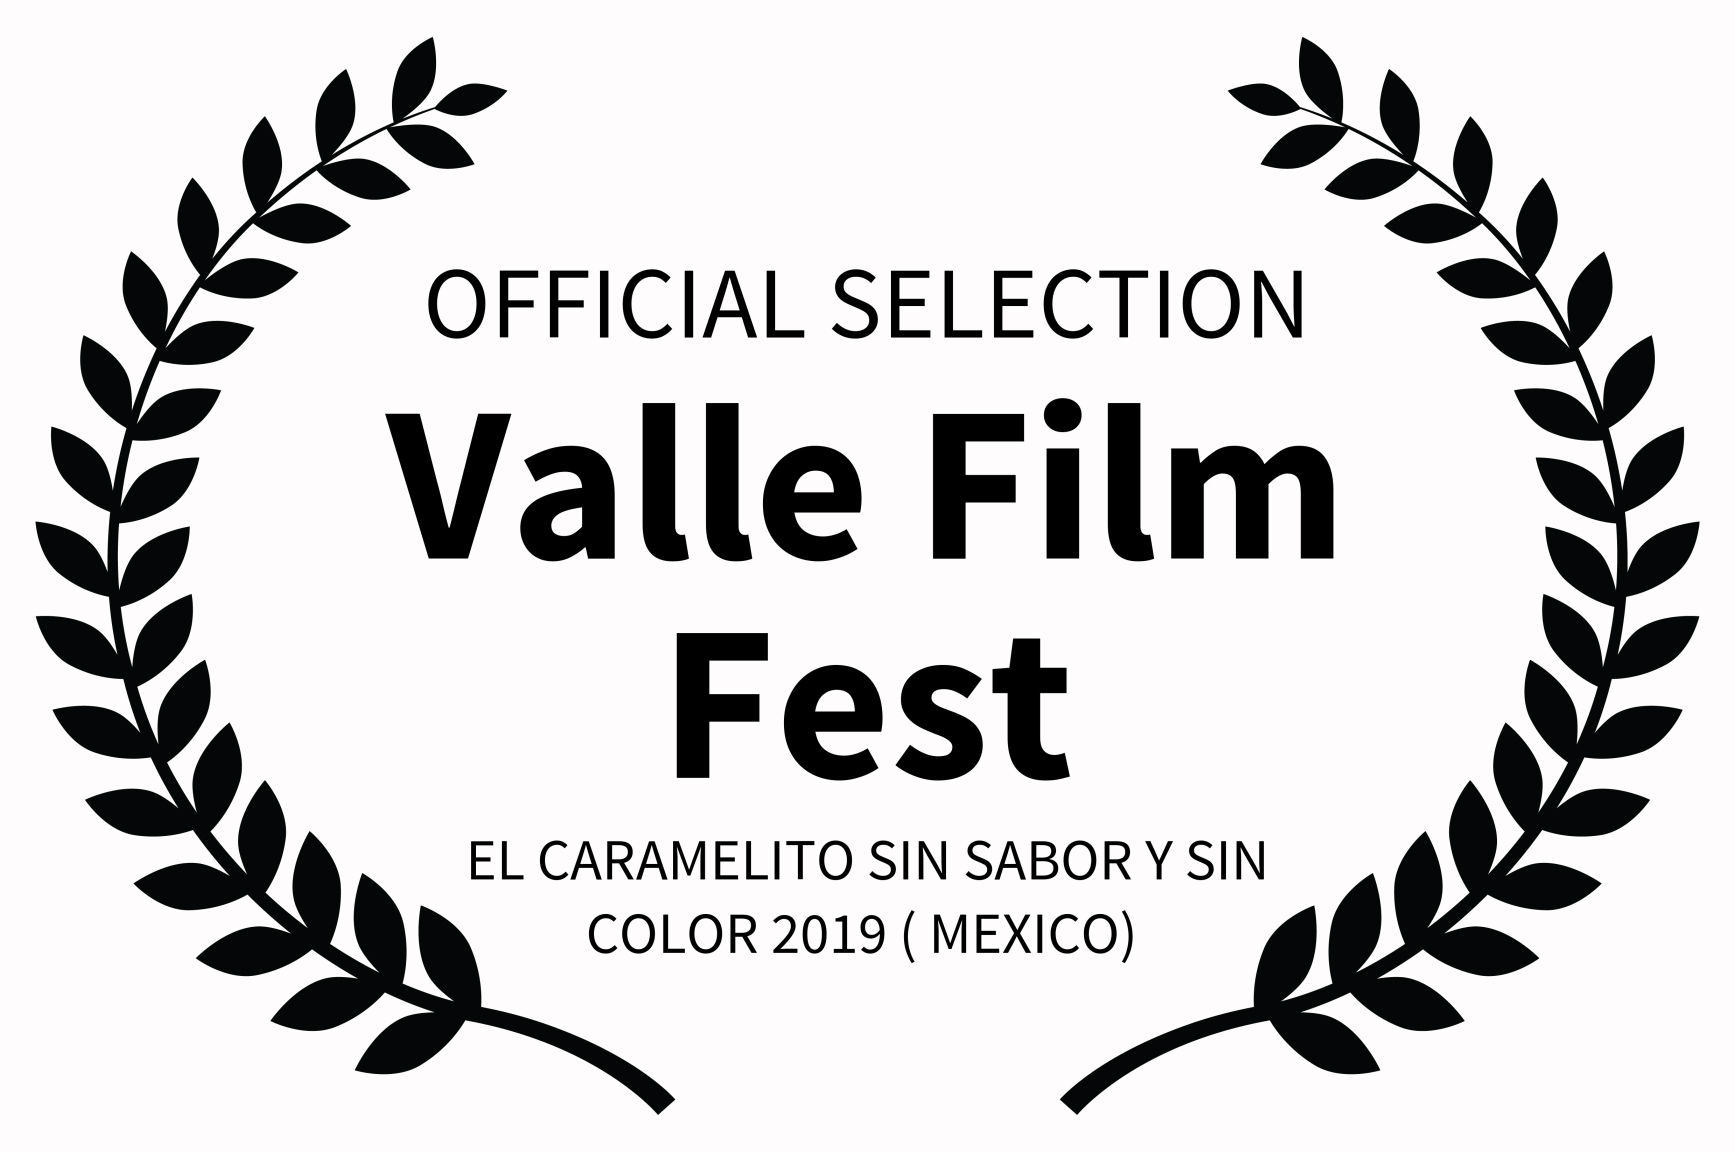 OFFICIAL SELECTION - Valle Film Fest - E